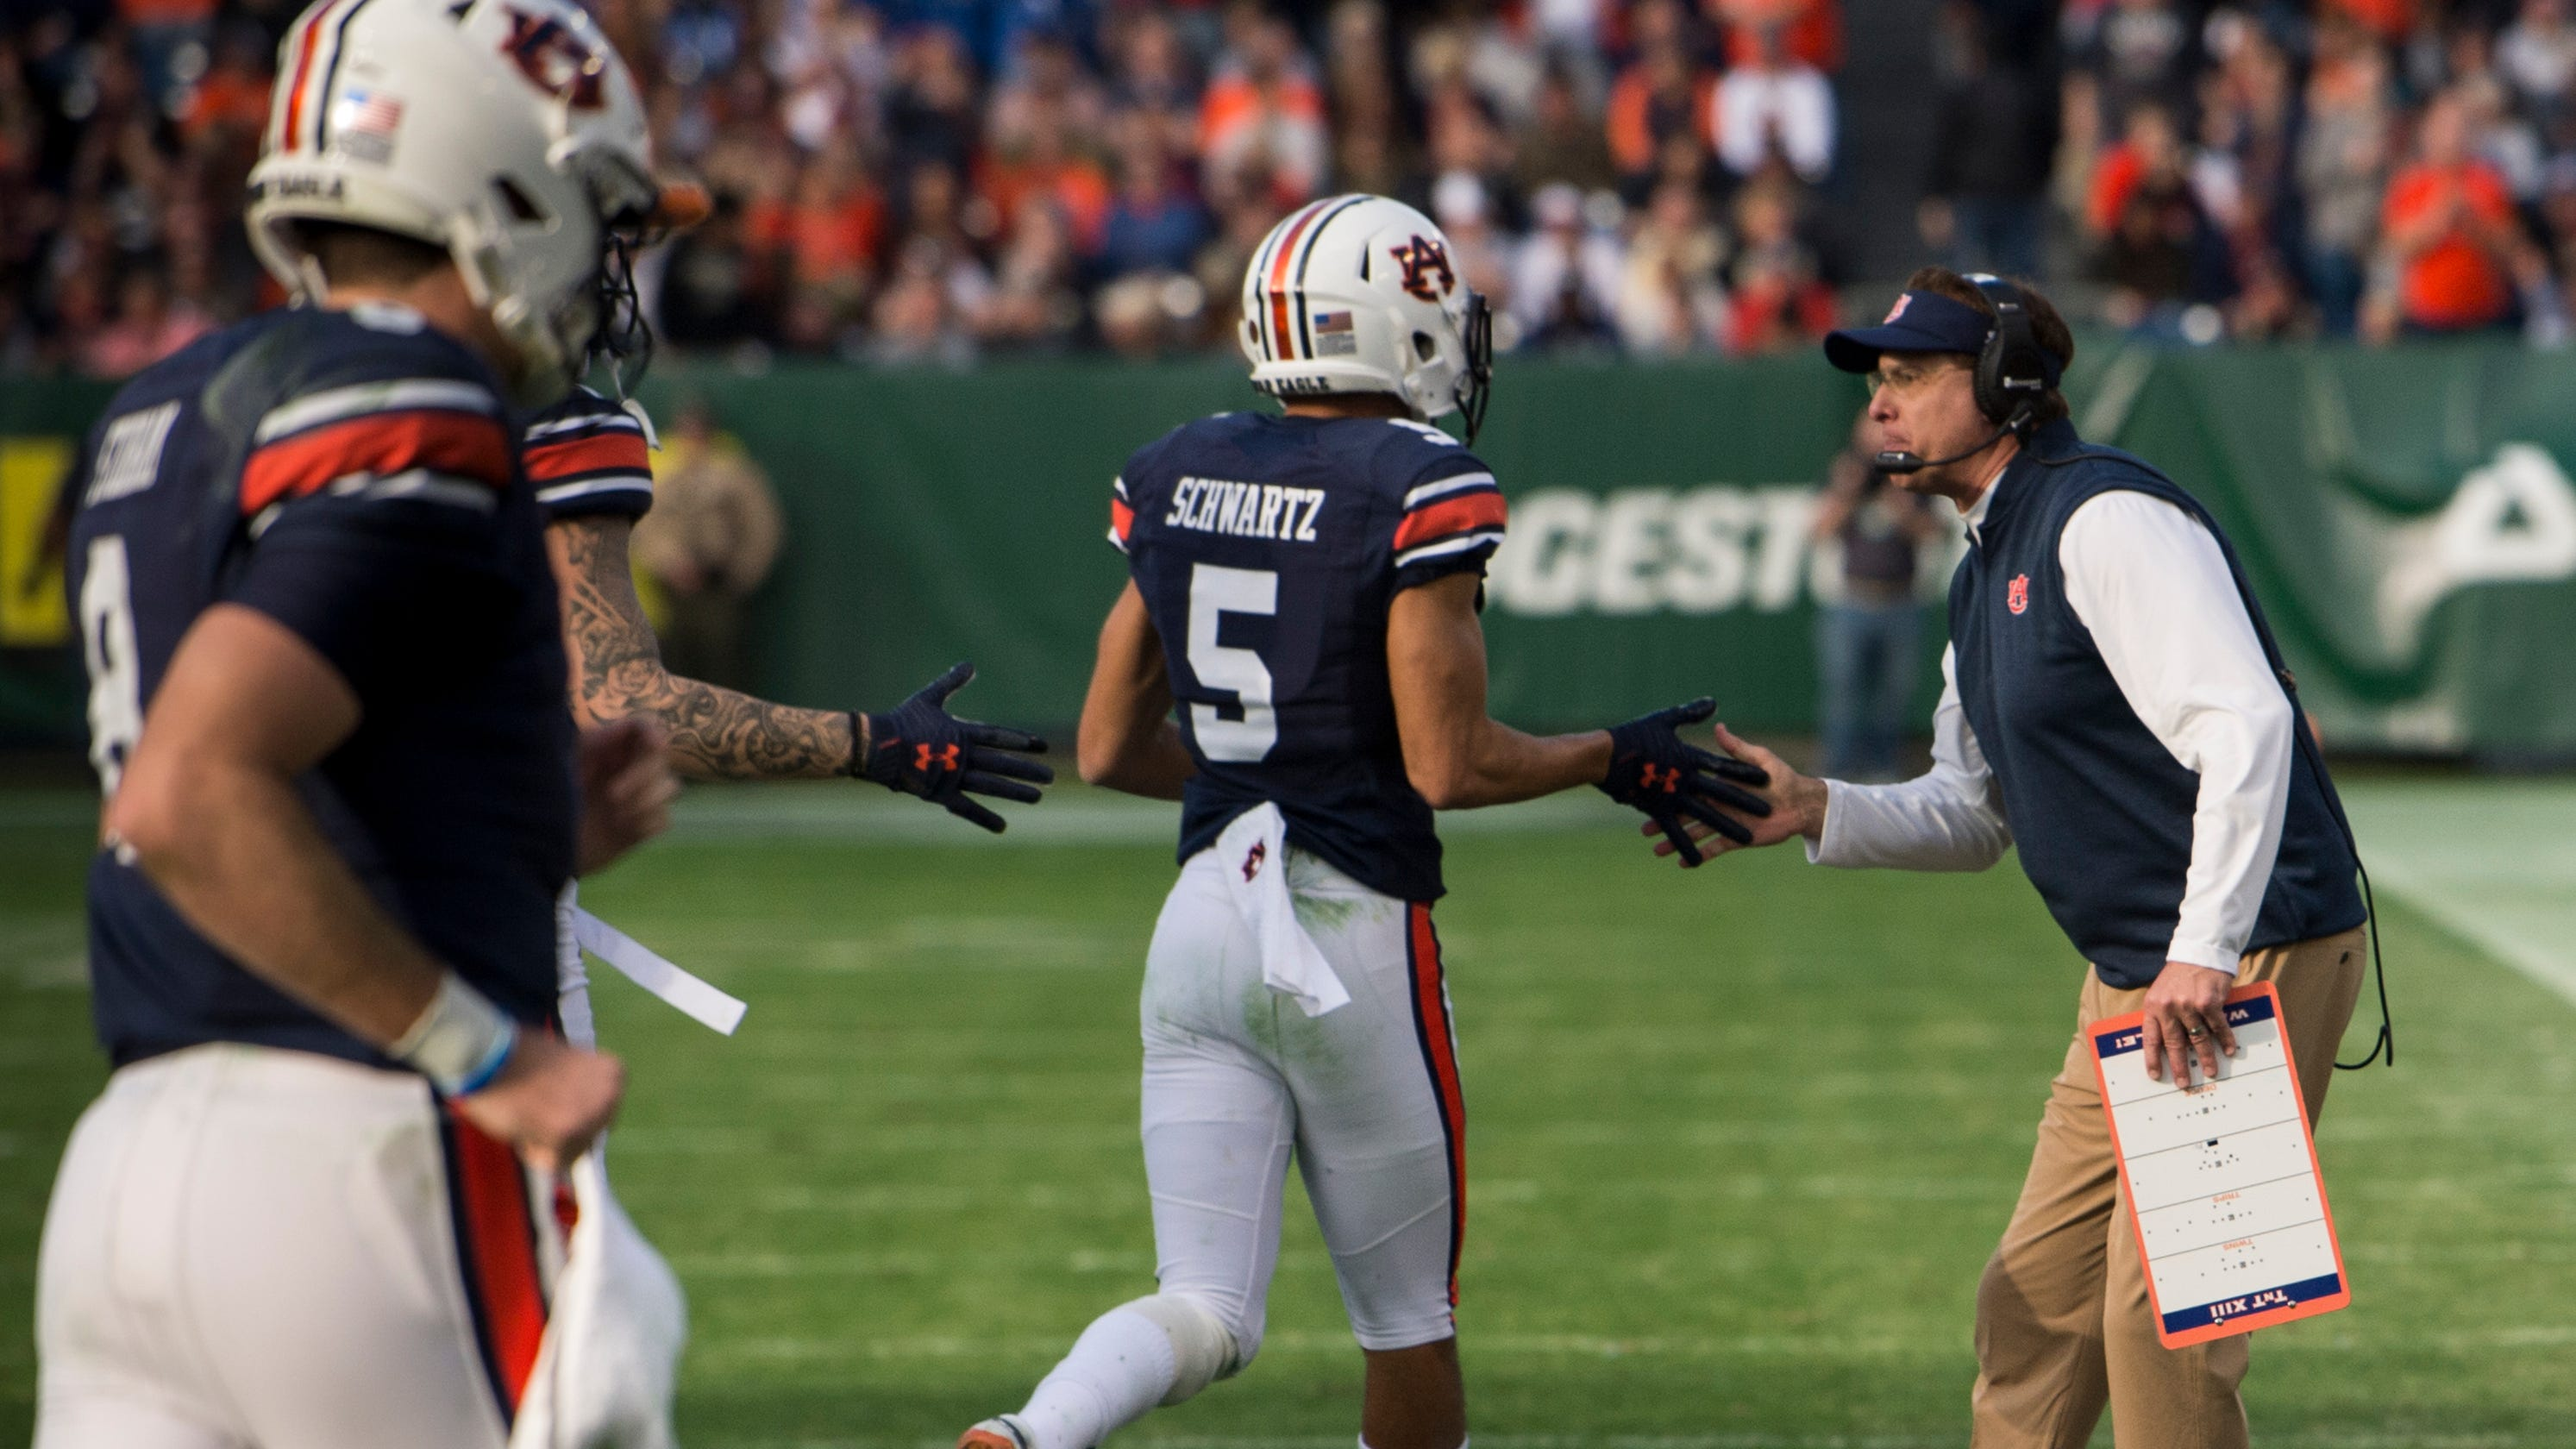 auburn offense erupts for record setting music city bowl performance